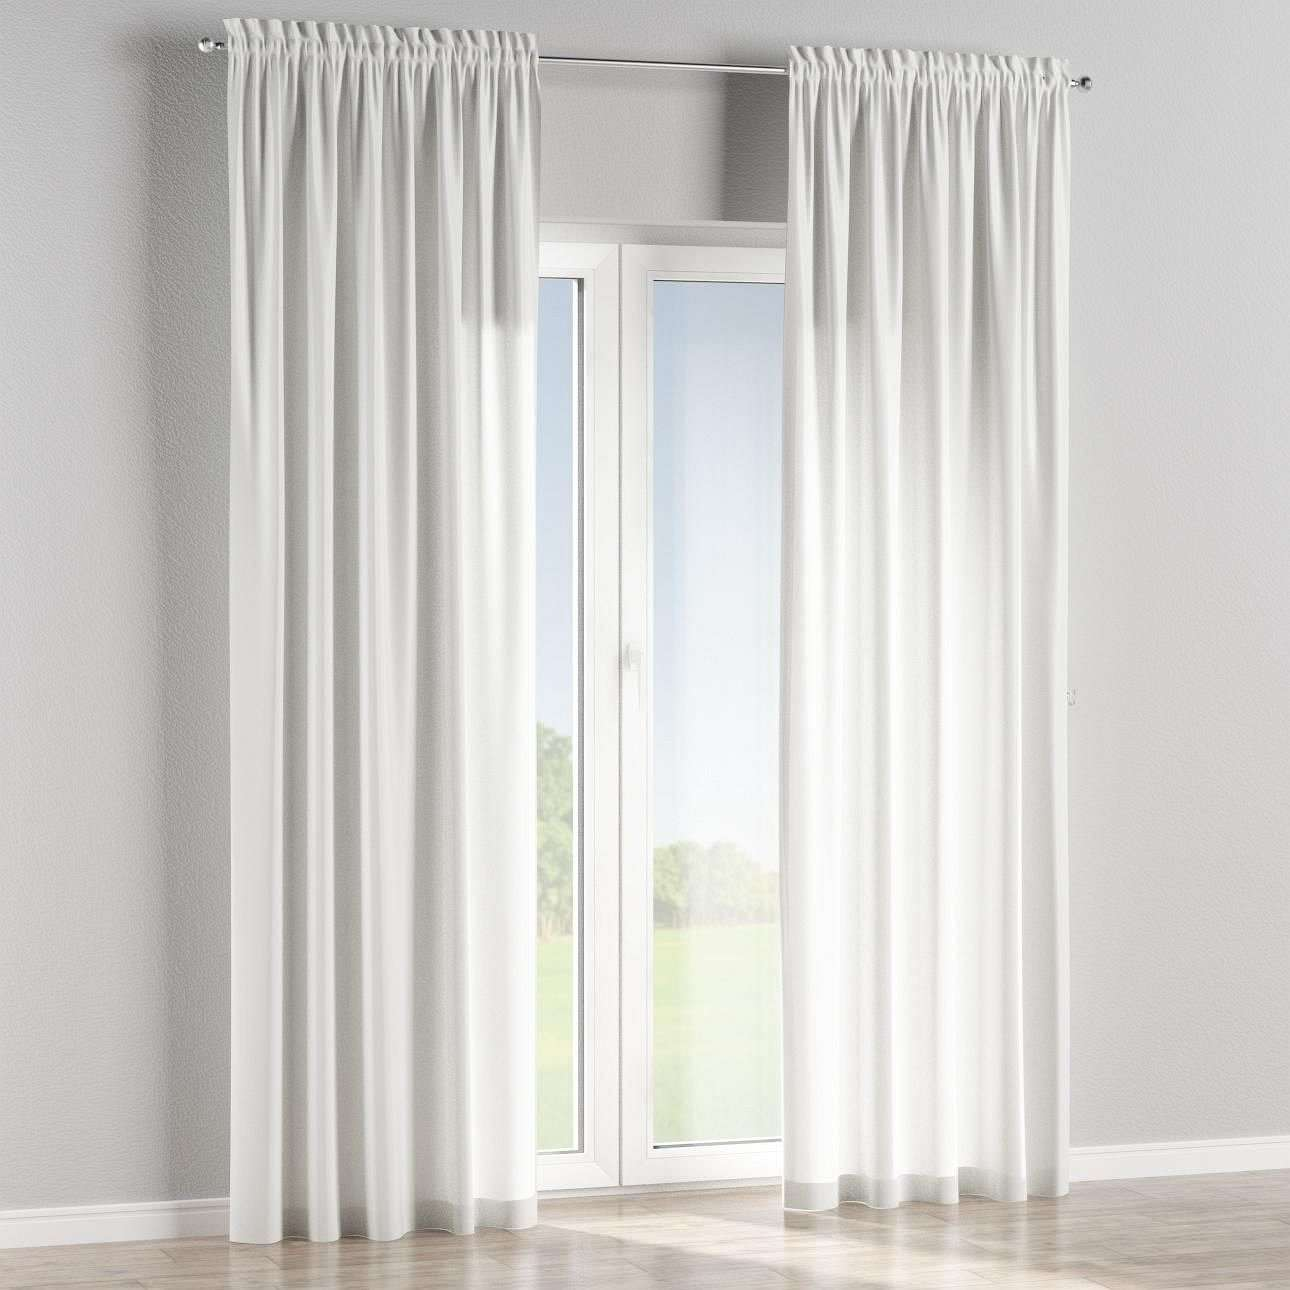 Slot and frill curtains in collection SALE, fabric: 136-75